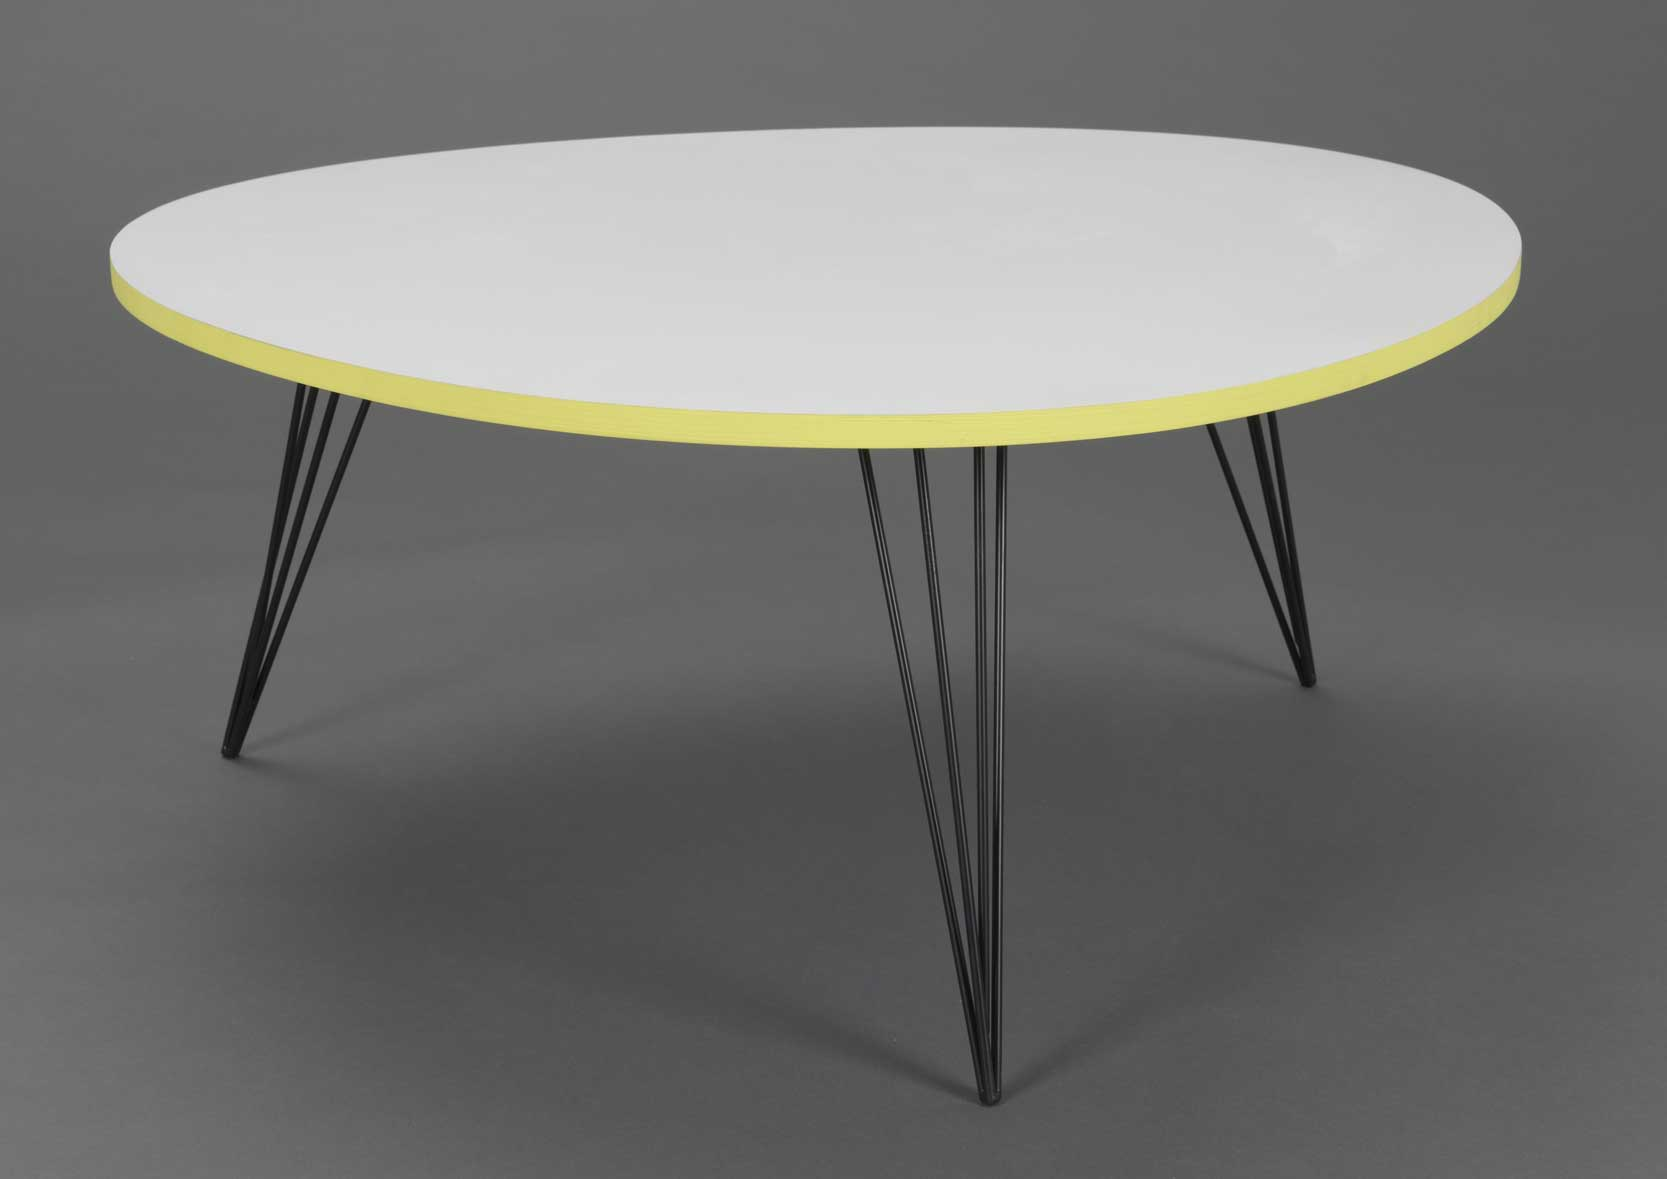 Table basse ronde blanche et jaune for Table ronde blanche